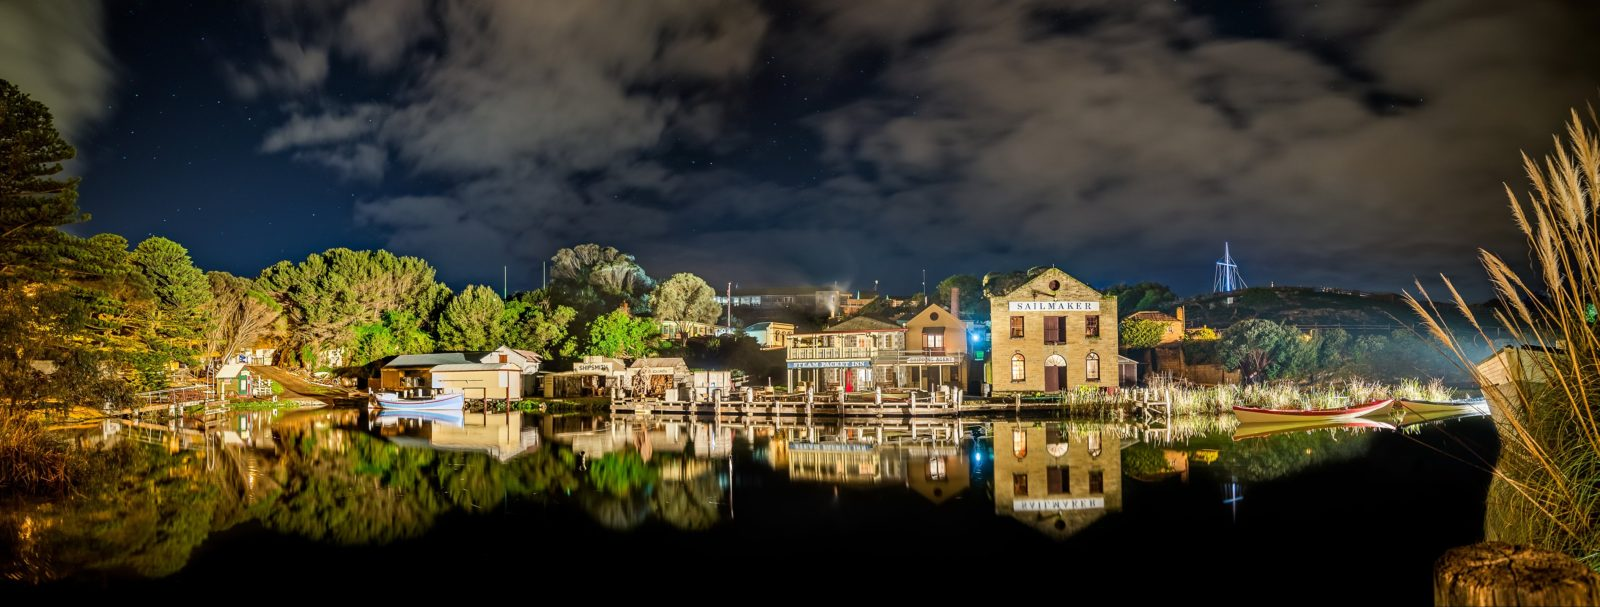 Flagstaff Hill Maritime Village and Shipwrecked Sound and Laser Show